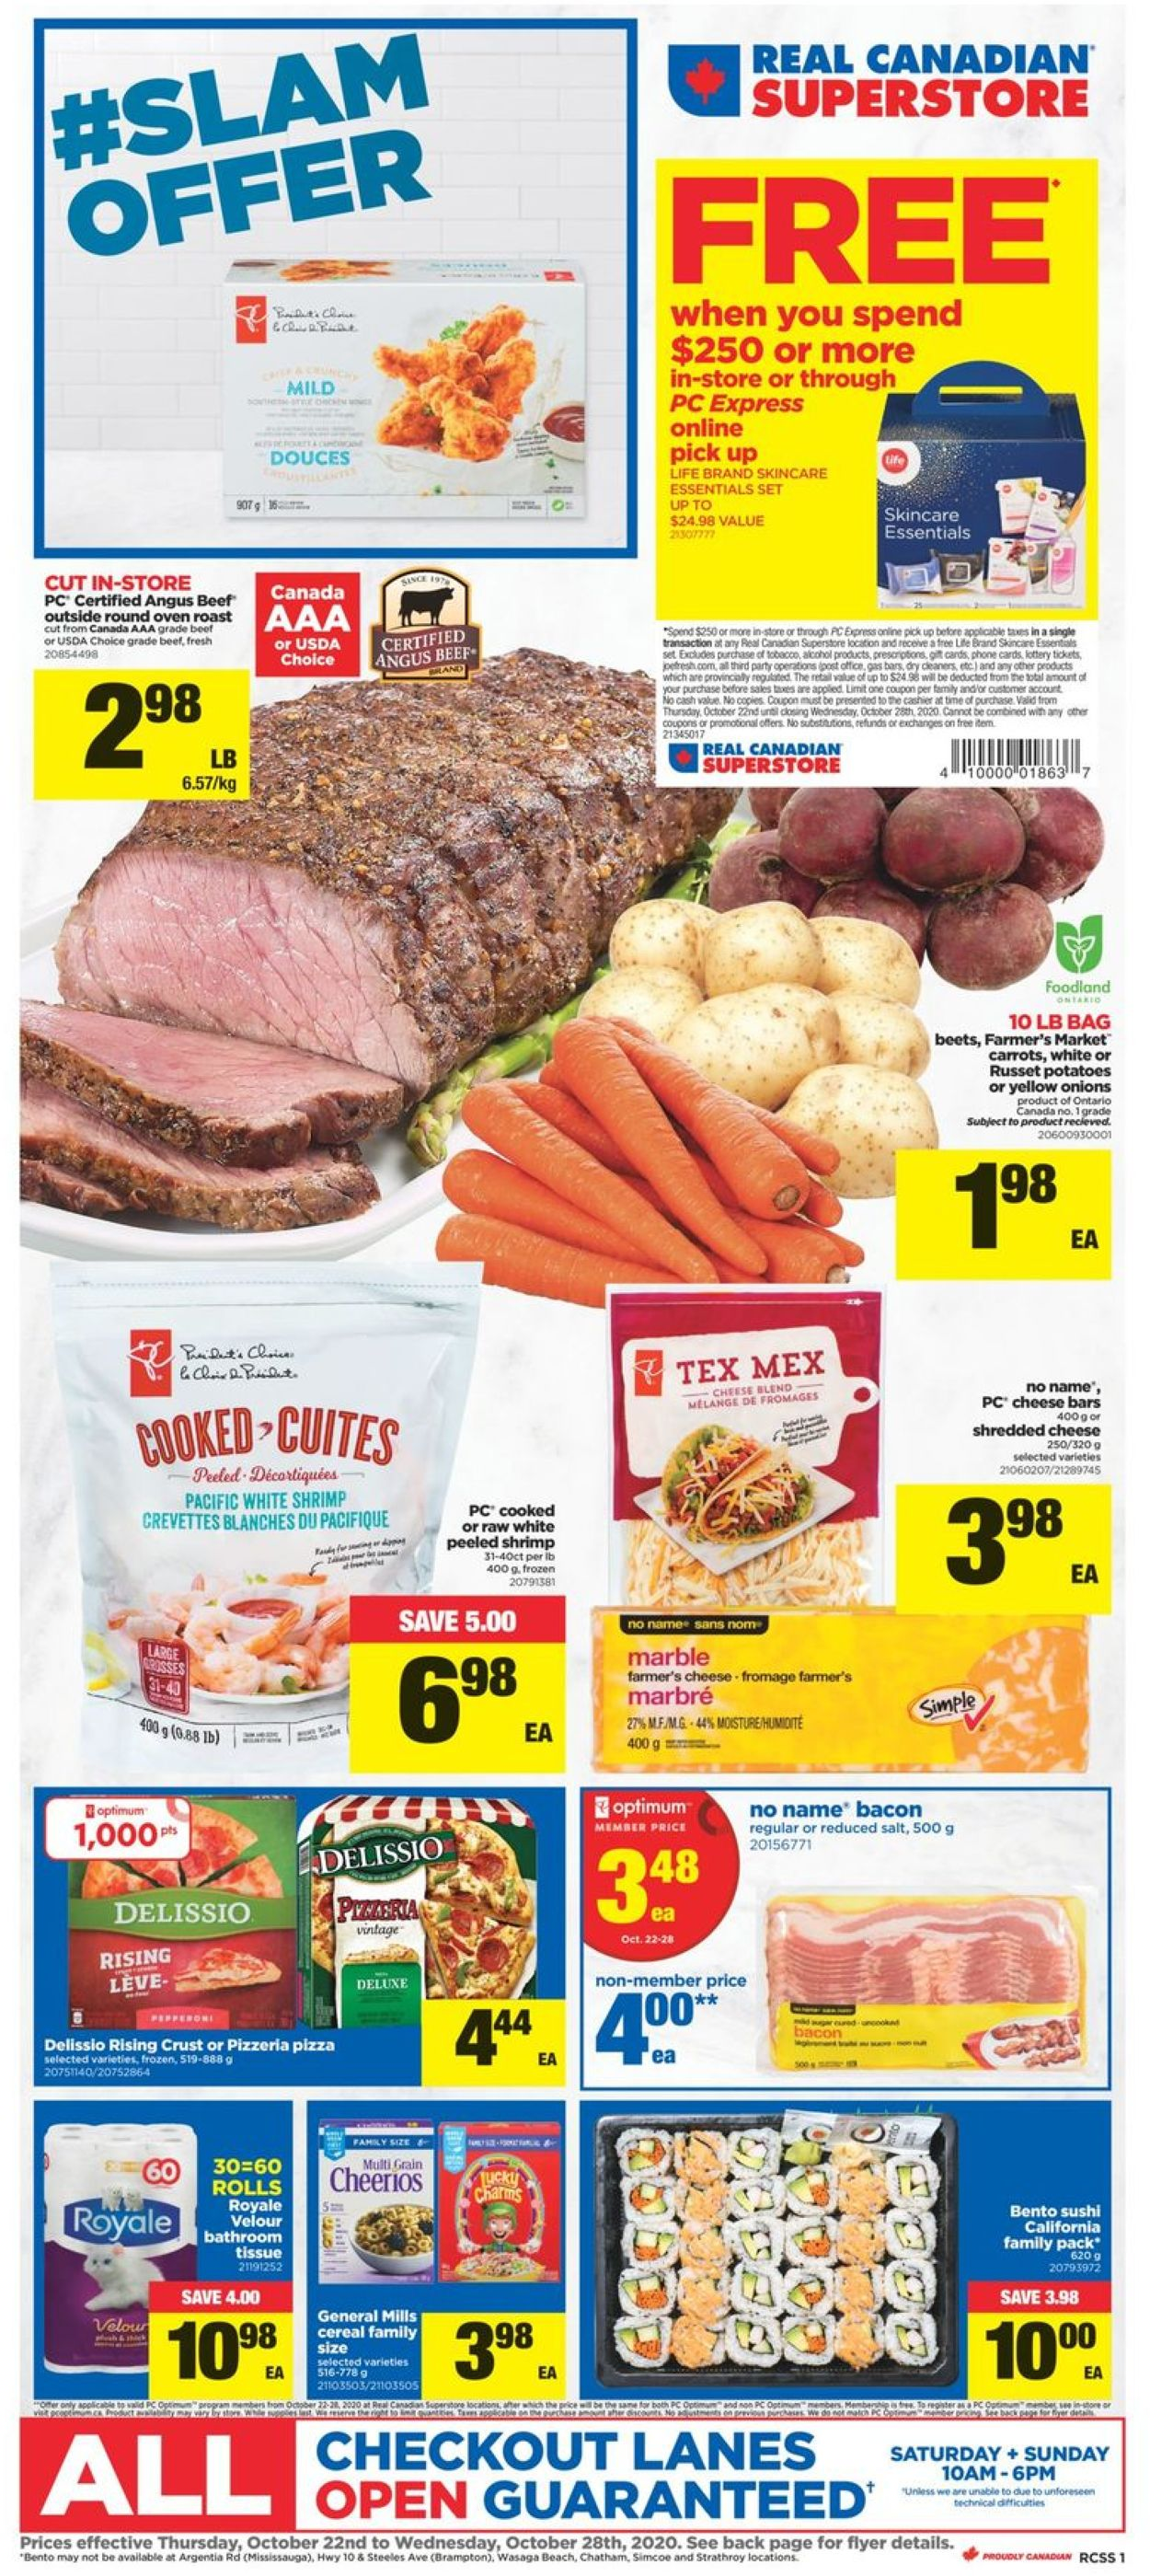 Real Canadian Superstore Flyer - 10/22-10/28/2020